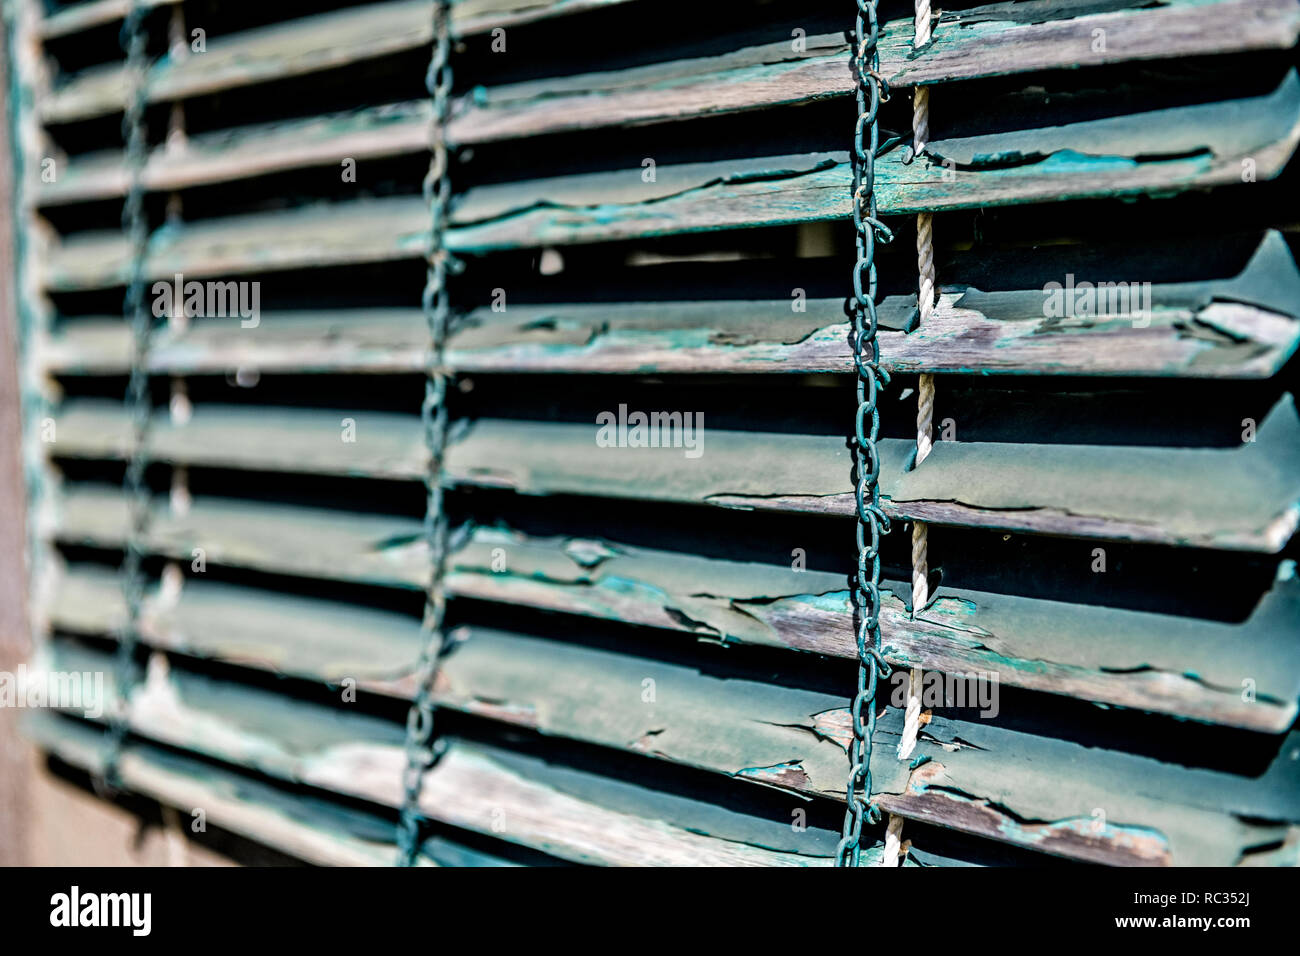 Peeling Paint Coming Away From Wooden Venetian Blinds Stock Photo Alamy